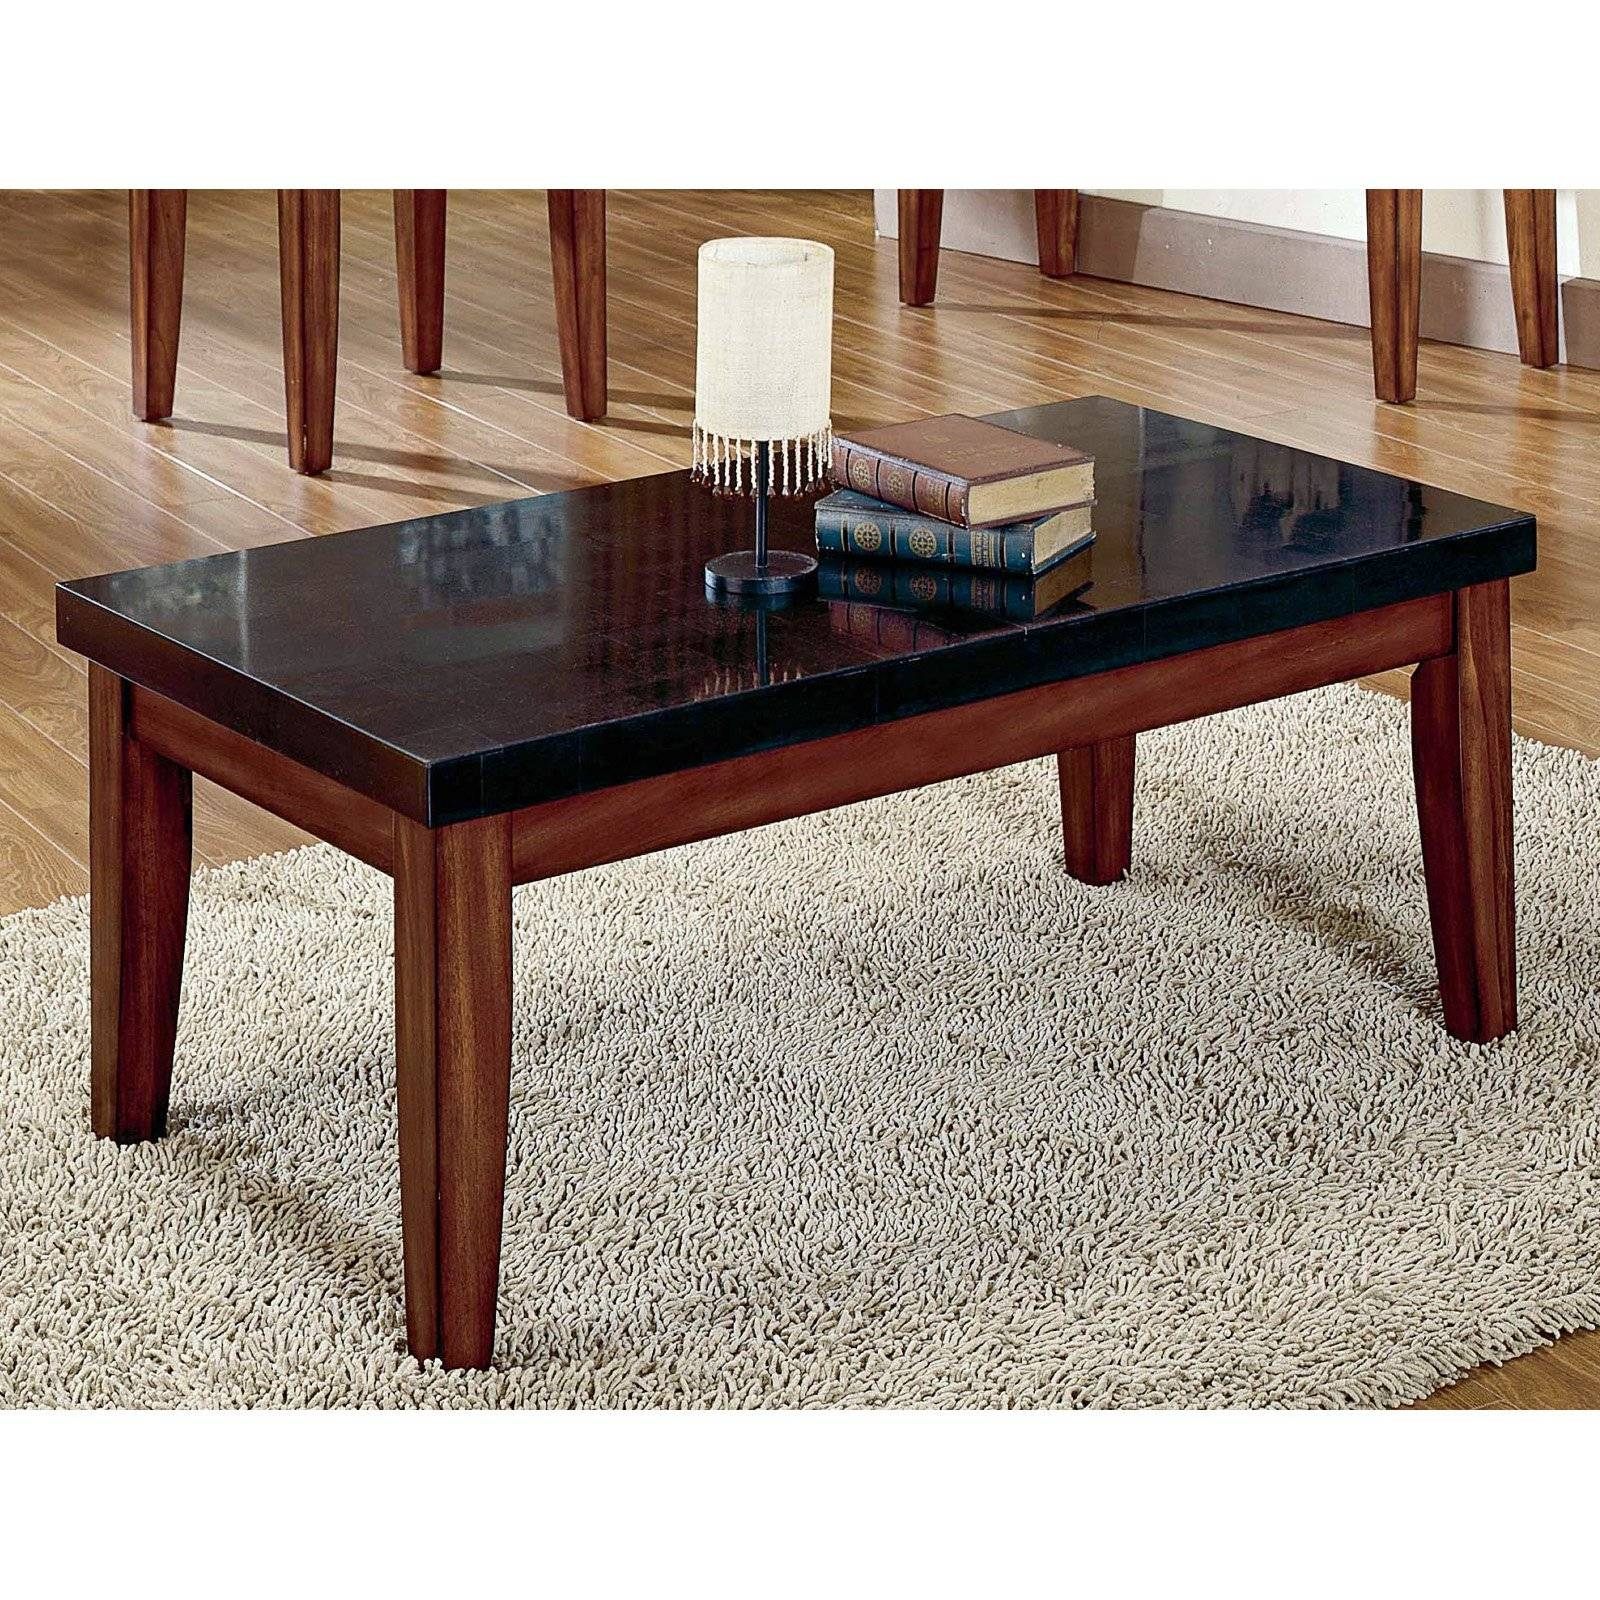 Trends Granite Coffee Table Ideas Designs – Marble Top End Tables pertaining to White And Brown Coffee Tables (Image 29 of 30)